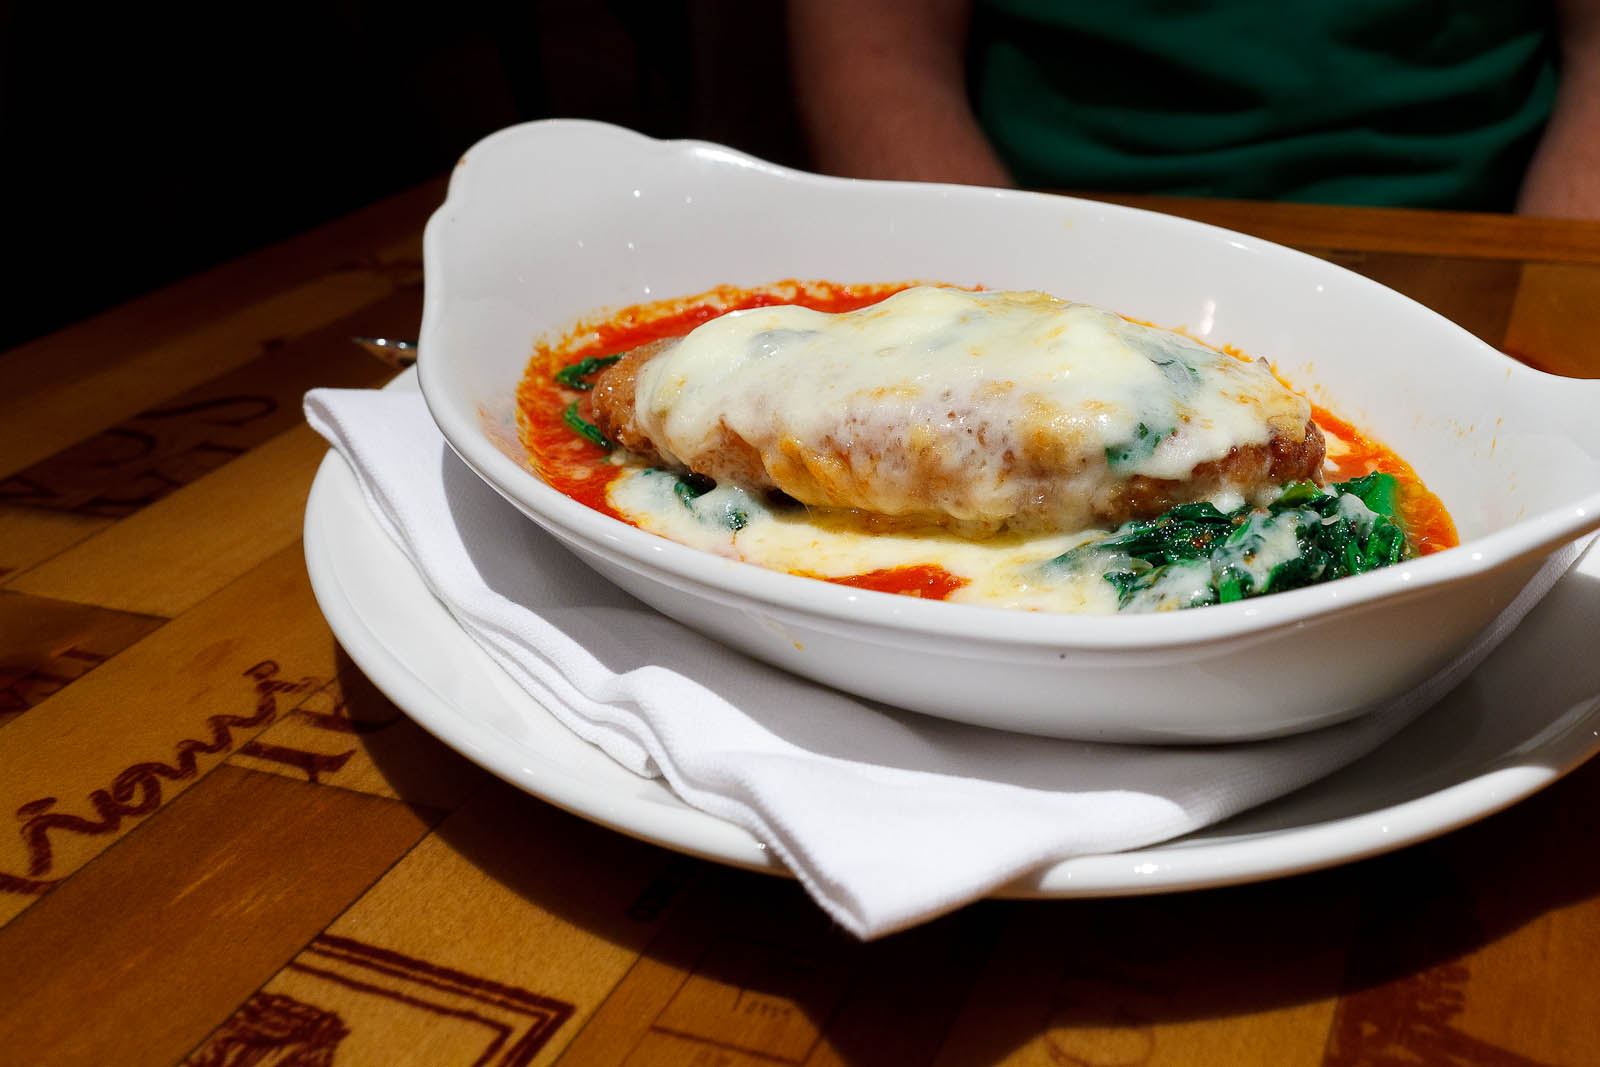 Pollo alla parmigiana - pan fried chicken, buffalo mozzarella, provolone, broccoli raab, tomato sauce ($21)